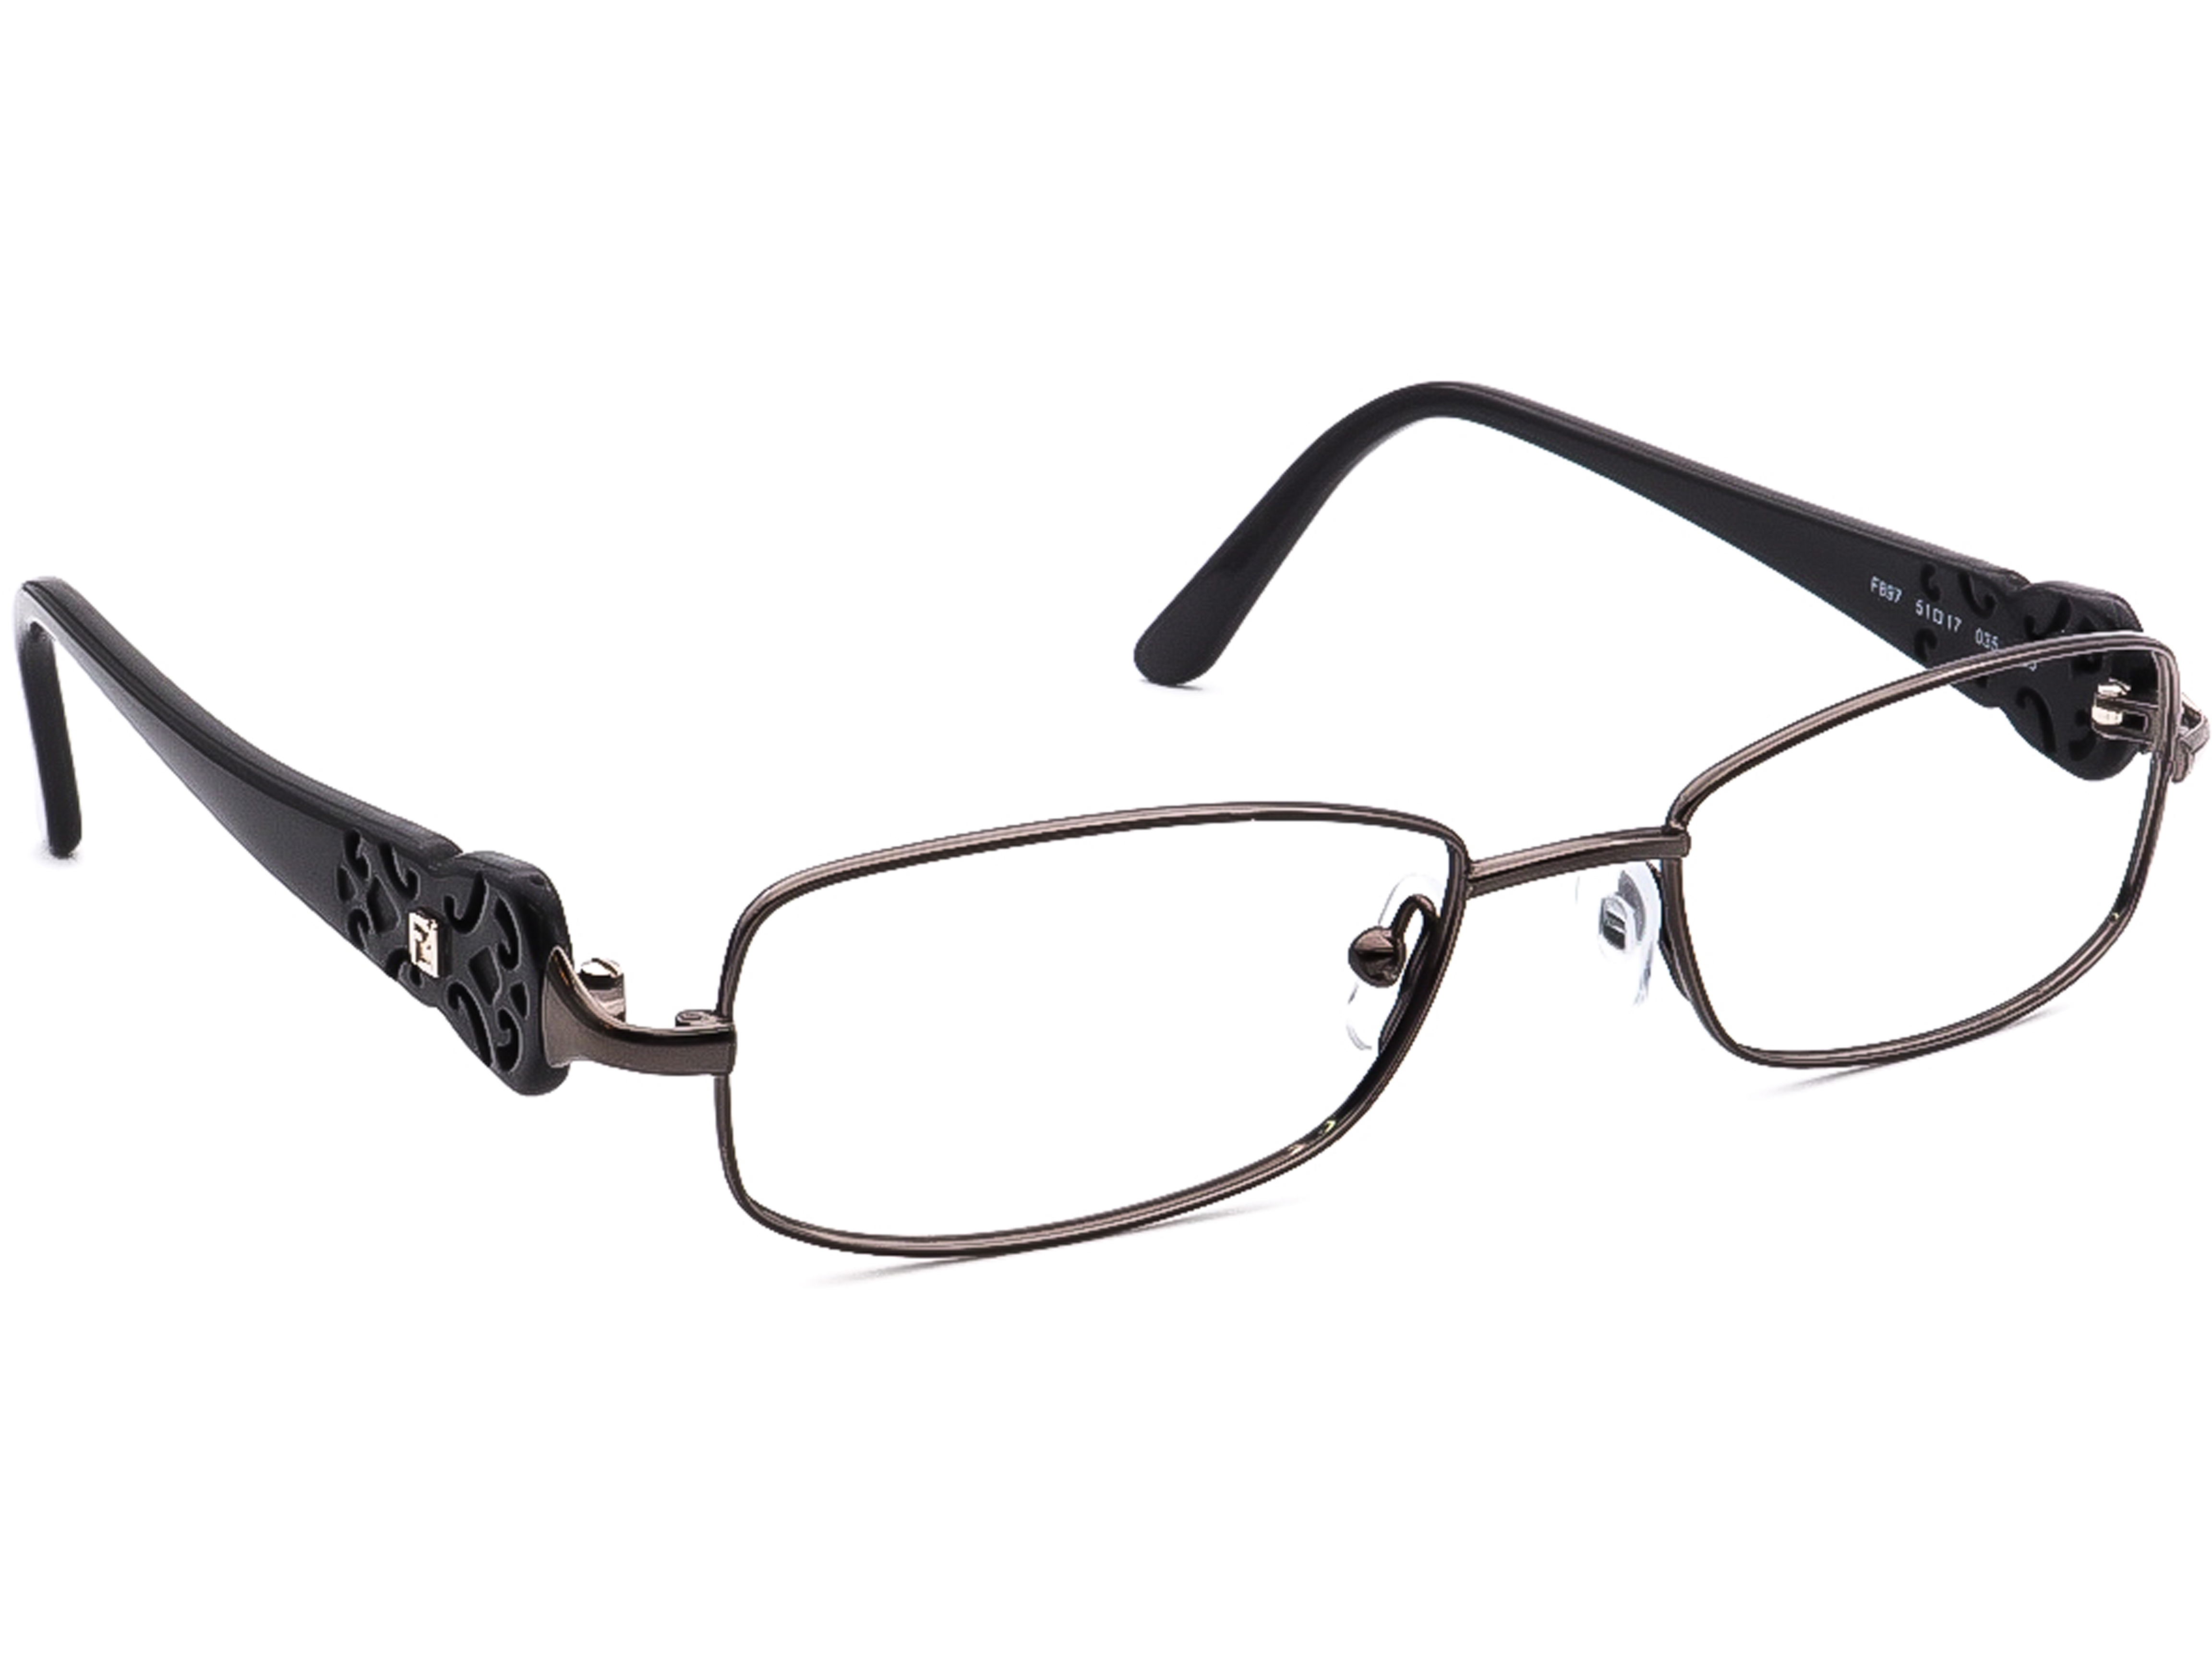 Fendi F897 035 Eyeglasses